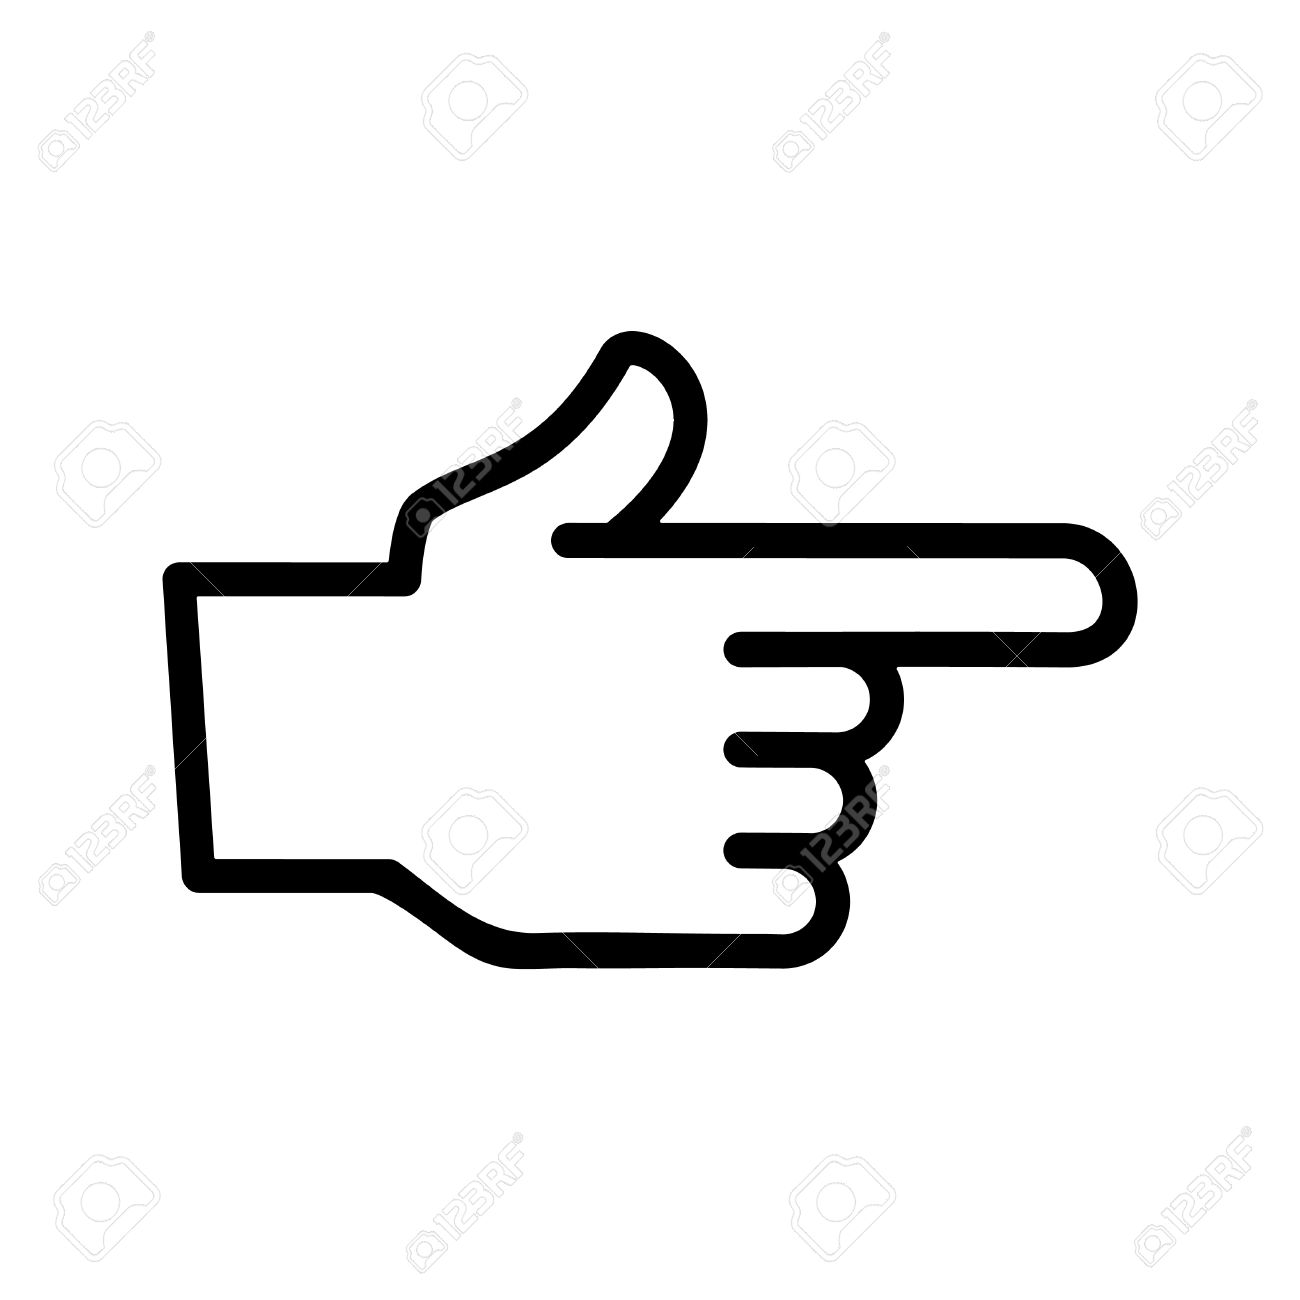 finger point vector icon royalty free cliparts vectors and stock rh 123rf com pointing finger vector free pointing finger vector image